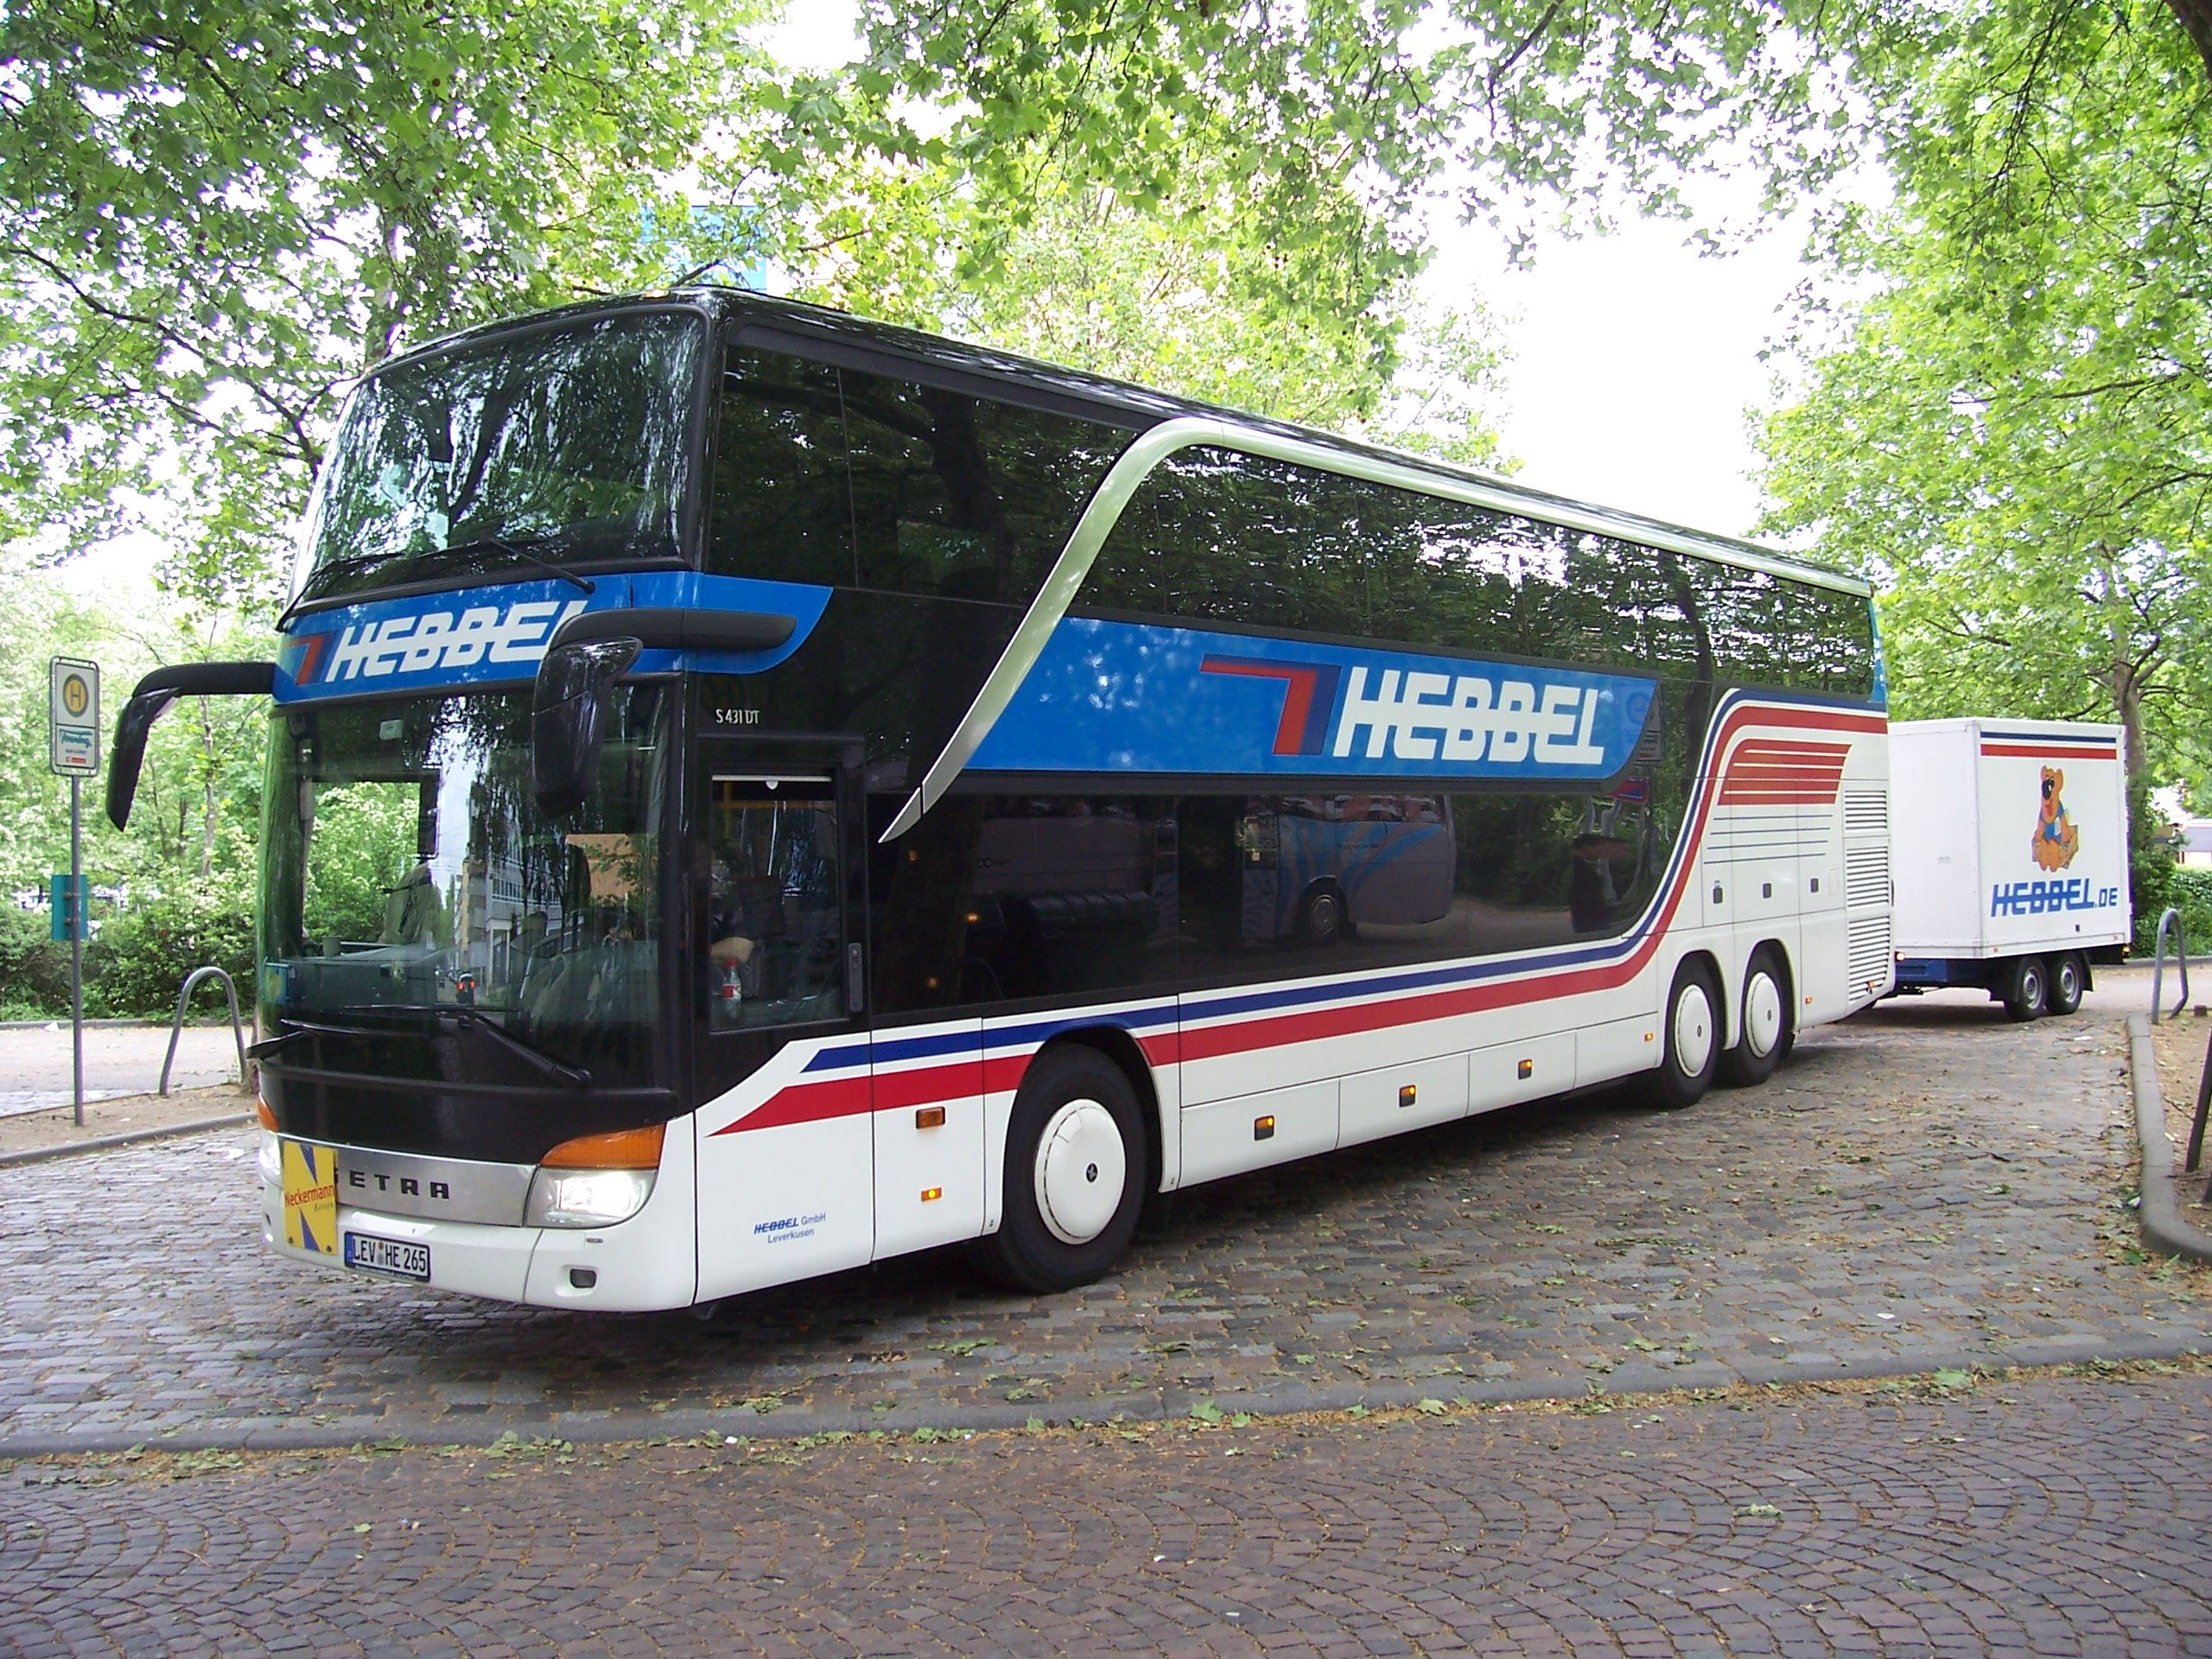 File:Setra S 431 DT Mannheim 100 5553.jpg - Wikimedia Commons